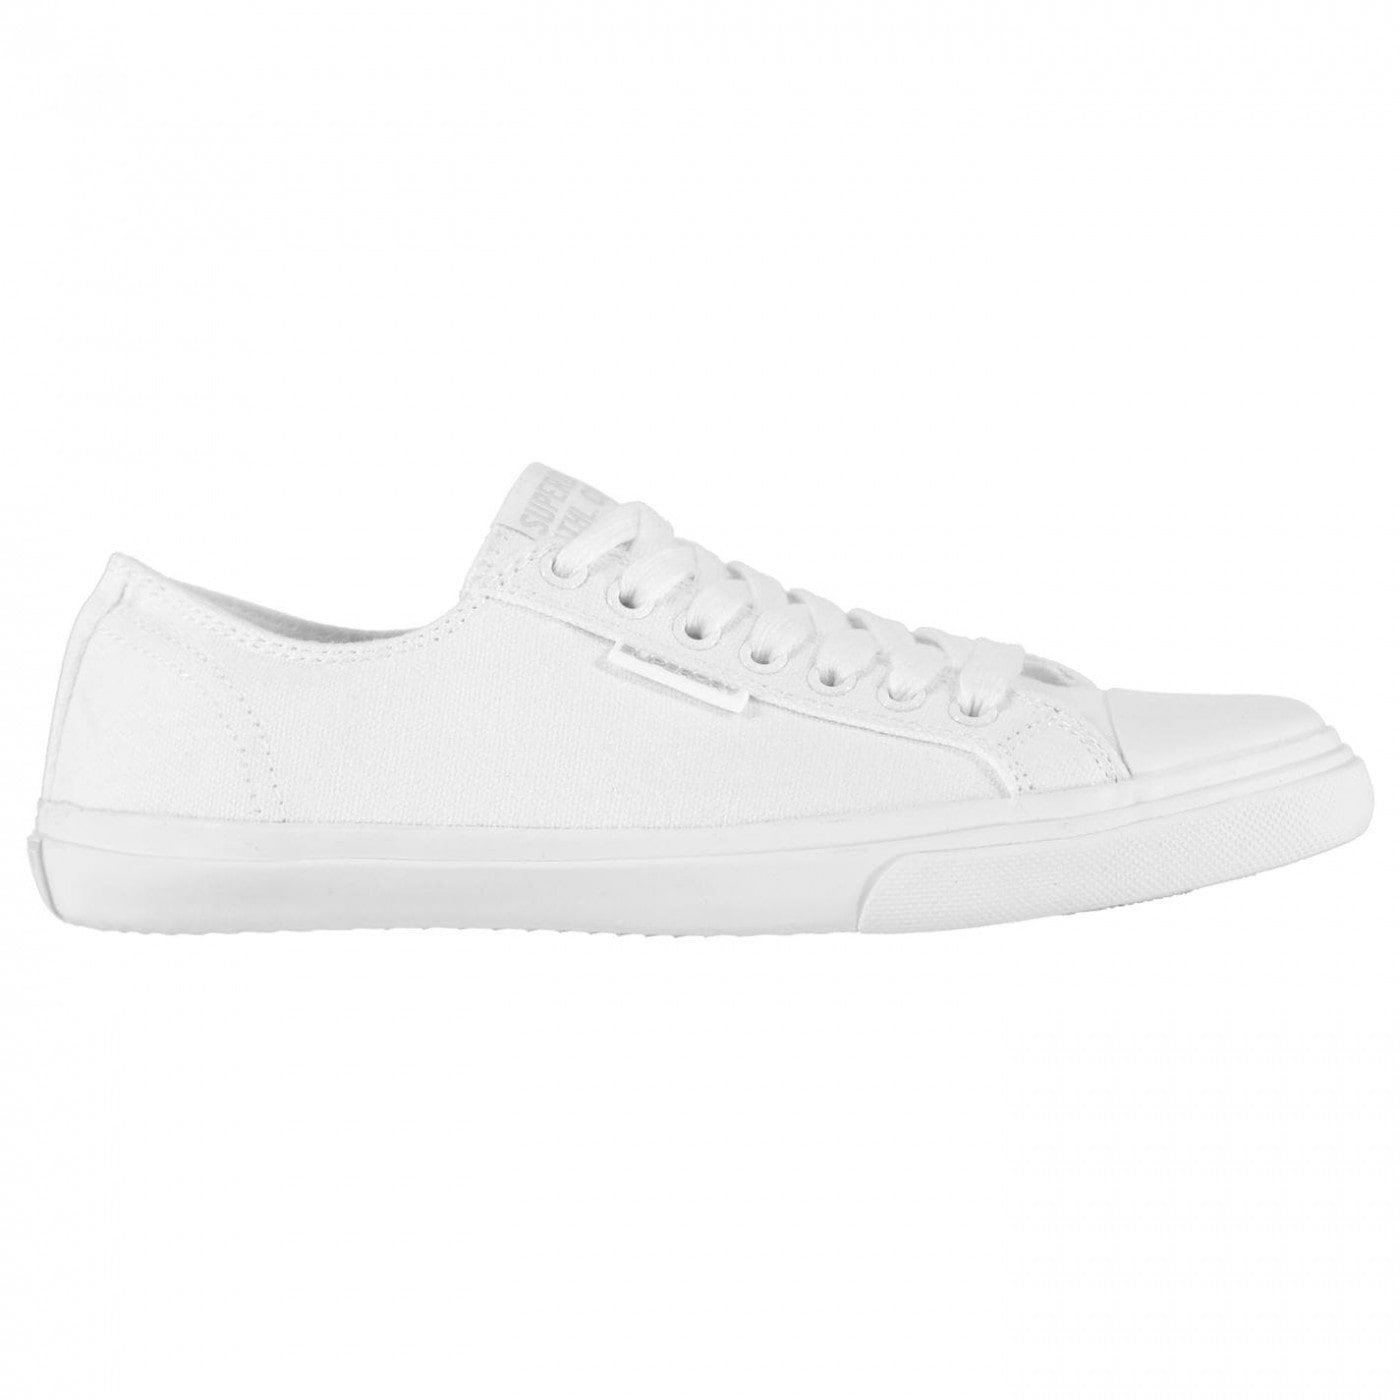 Superdry Classic Canvas Shoes